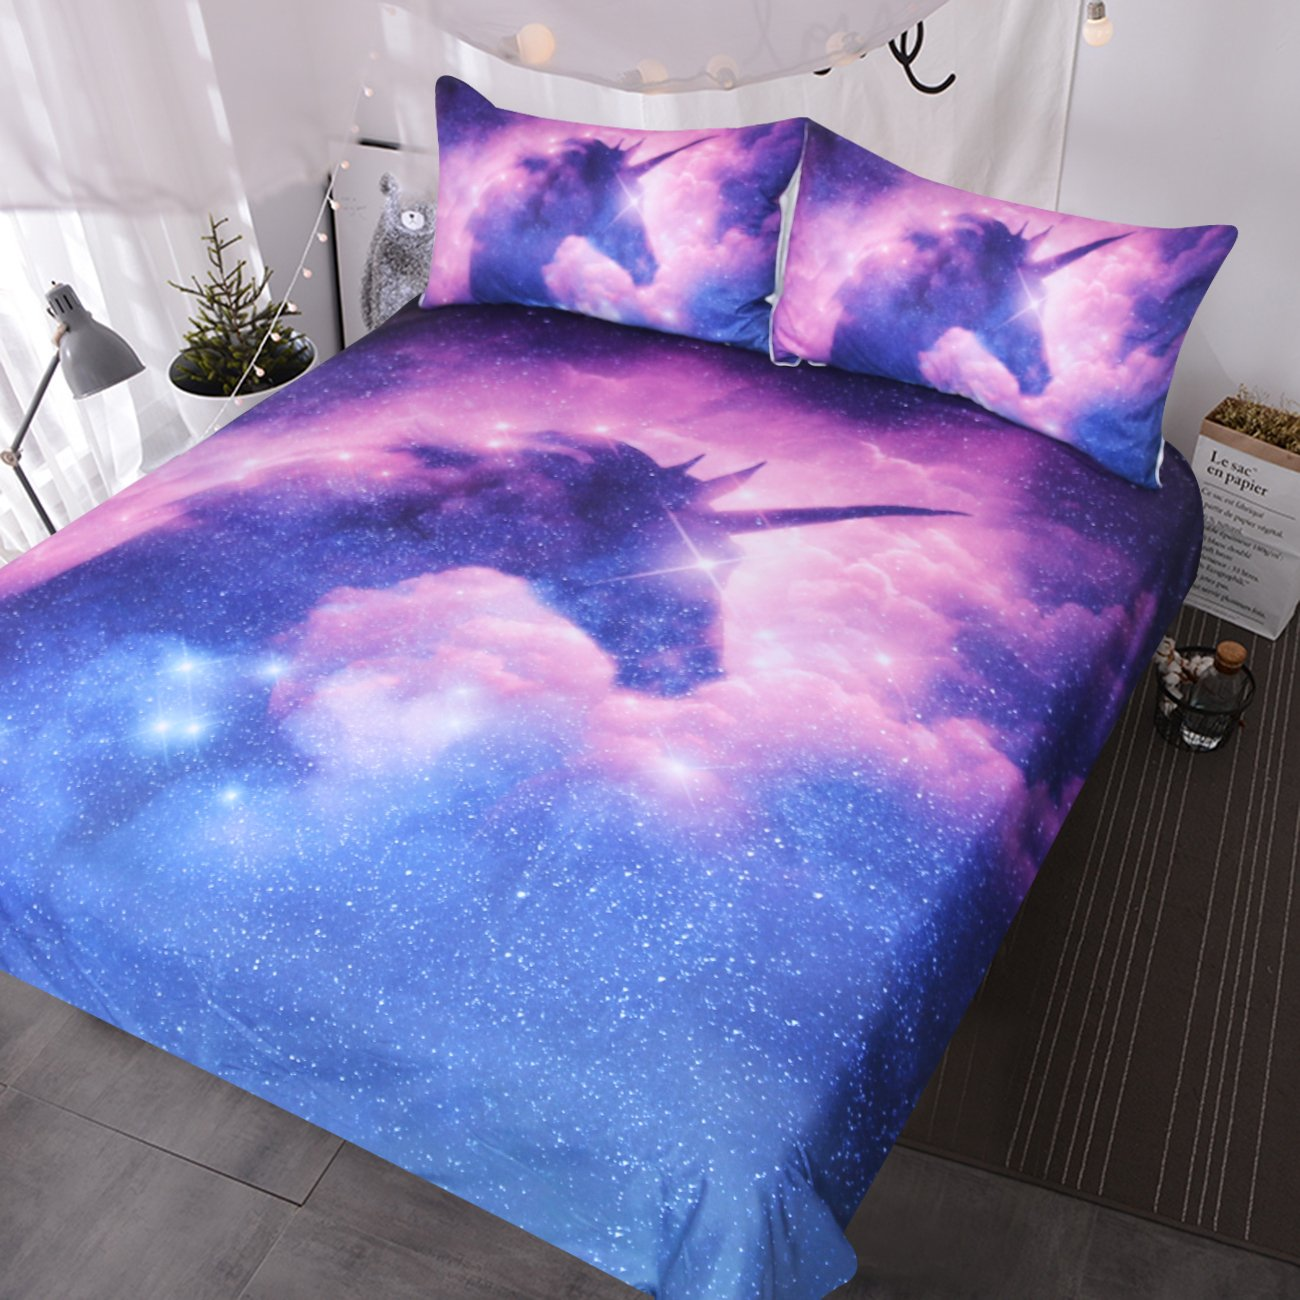 BlessLiving Galaxy Unicorn Bedding Kids Girls Psychedelic Space Duvet Cover 3 Piece Pink Purple Sparkly Unicorn Bedspread (Queen)